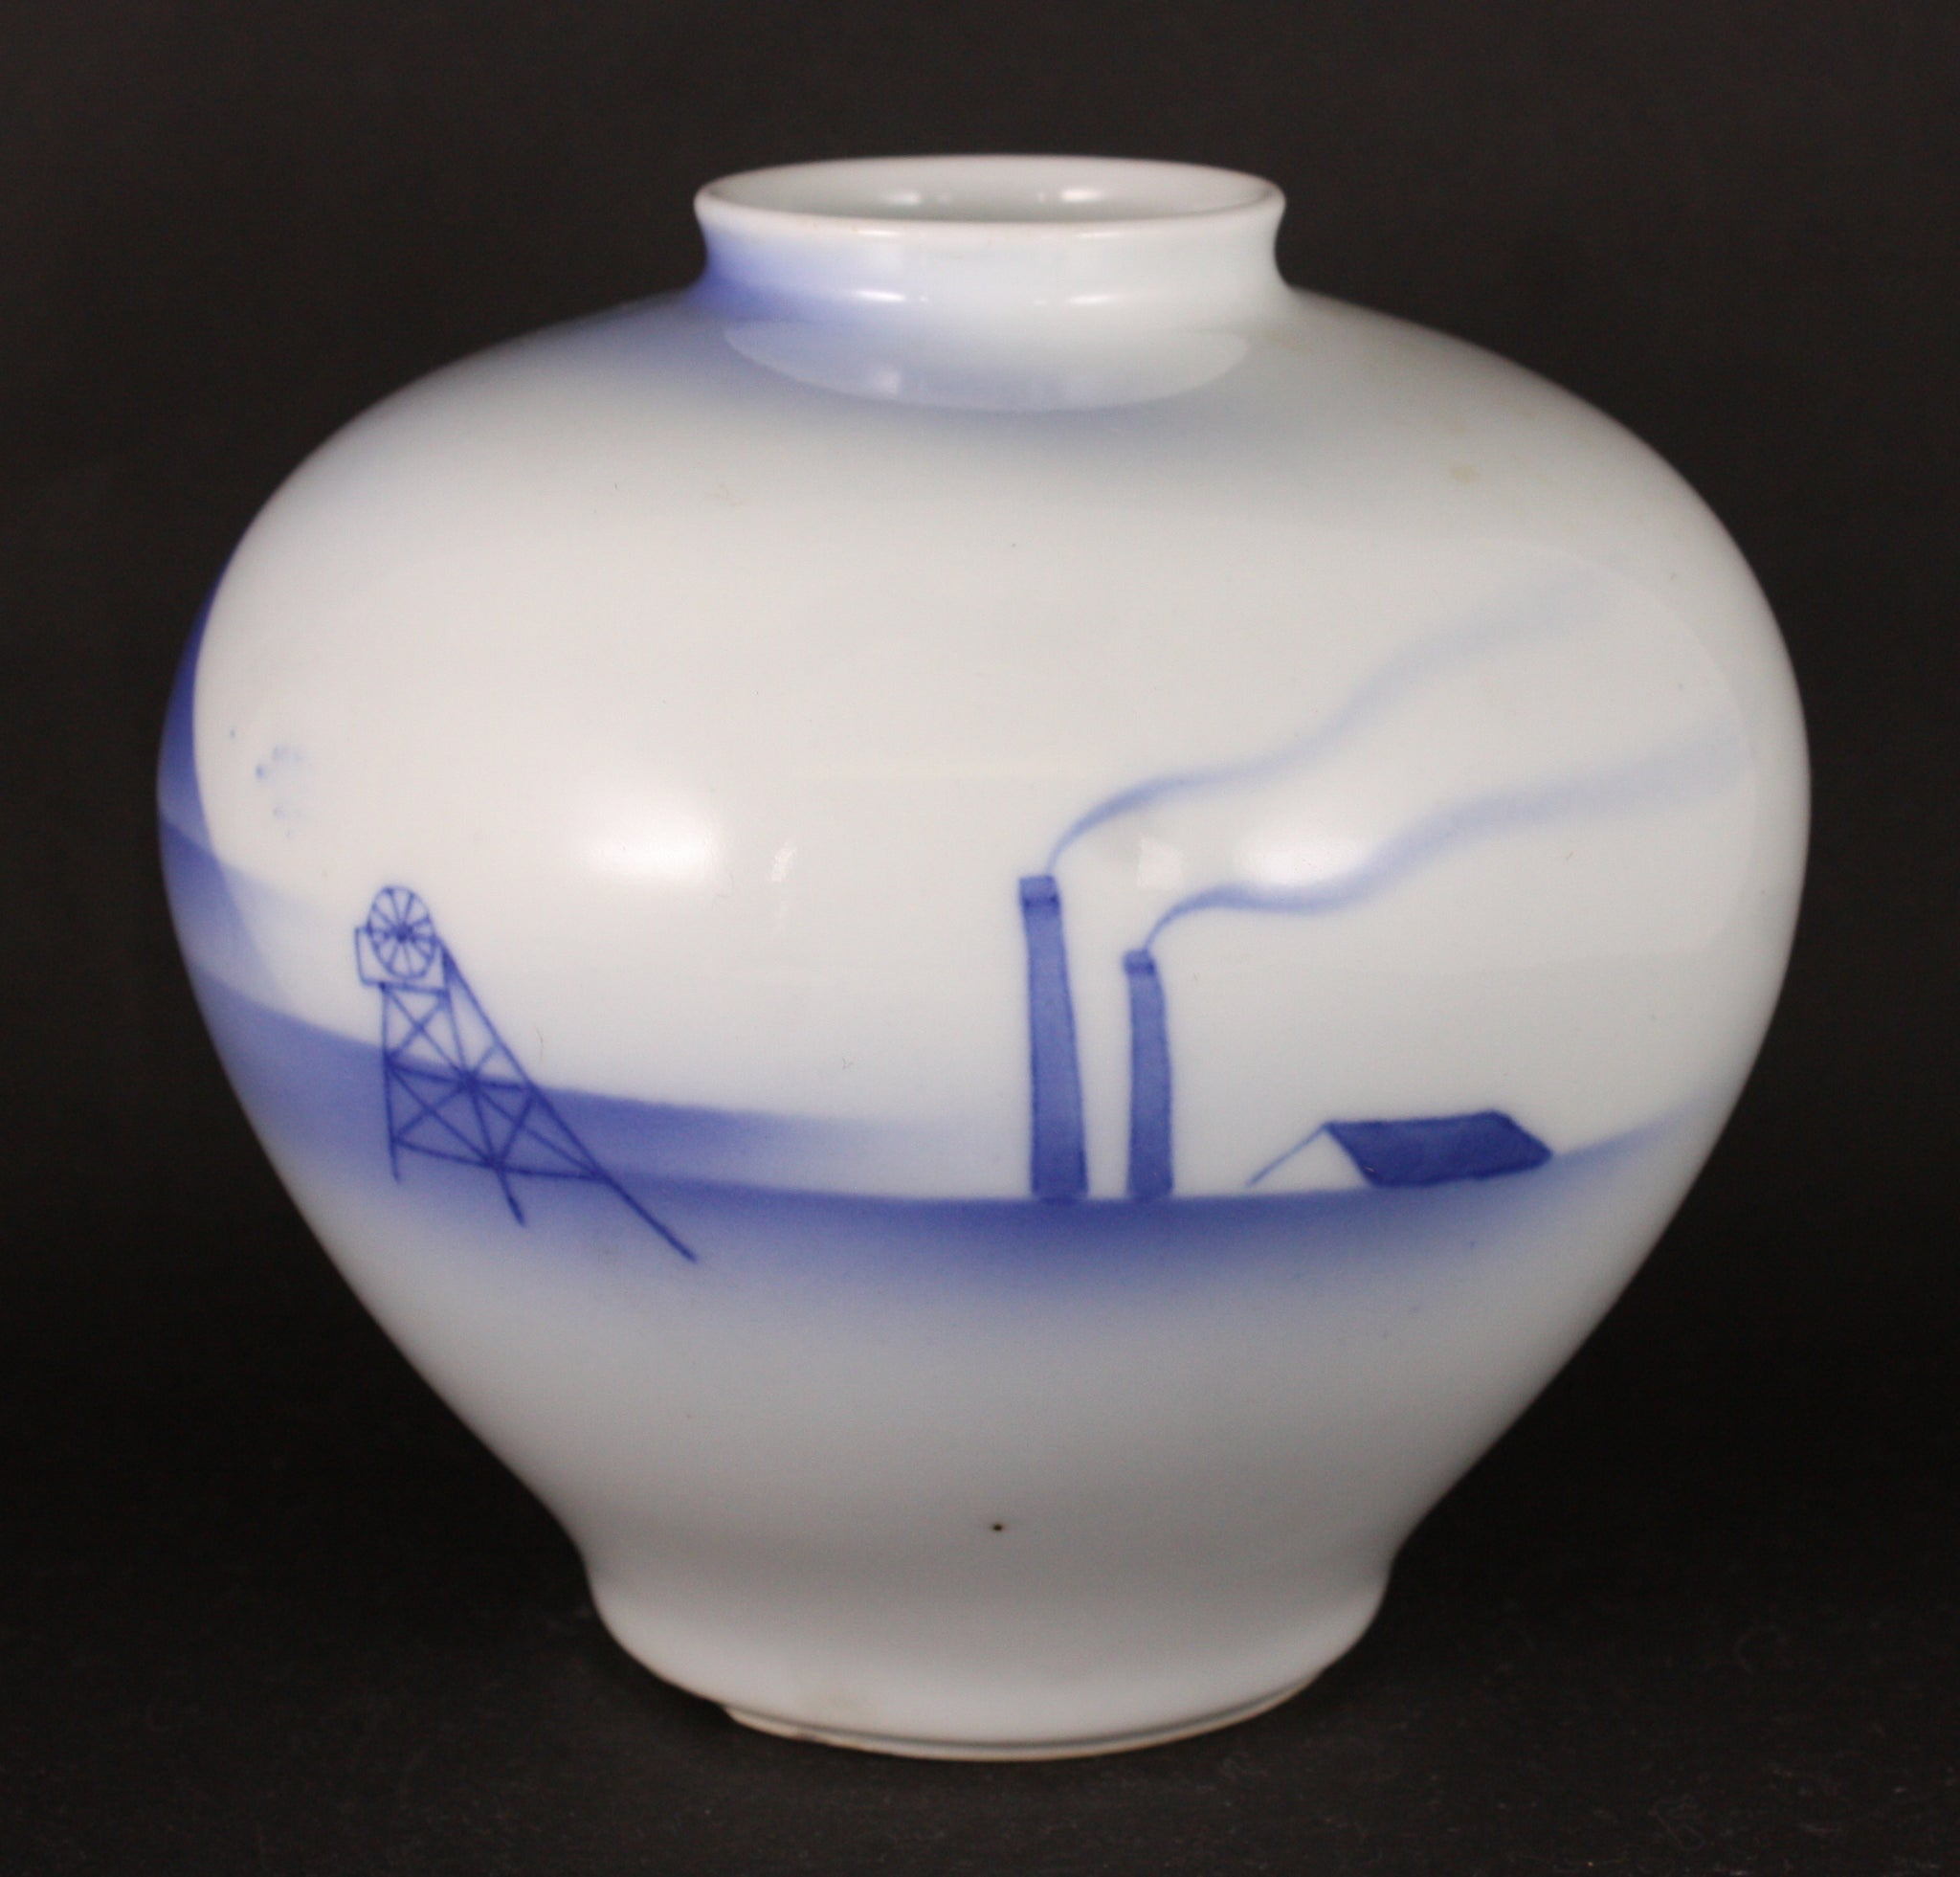 Very Rare Antique Japanese Military 1939 Sue Coal Mining Department 50th Anniversary Navy Vase